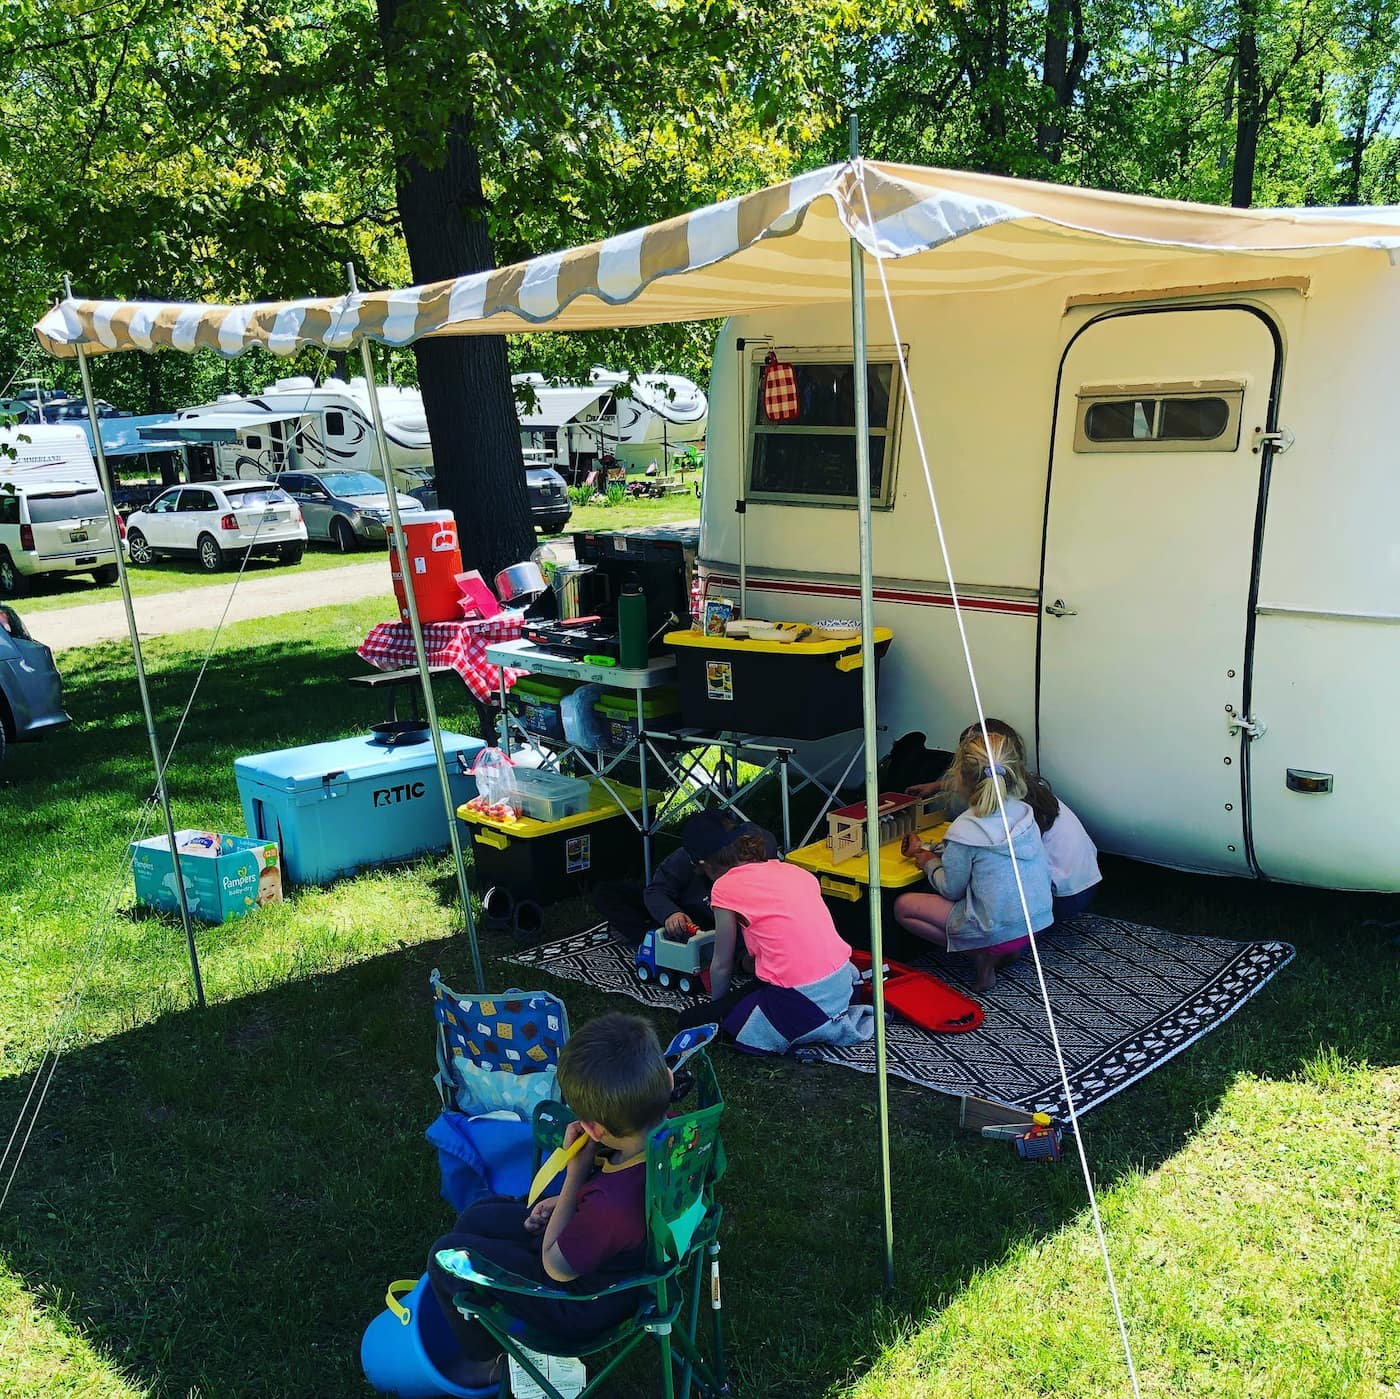 Family hanging out beside a camper below a sunshade awning on sunny day.